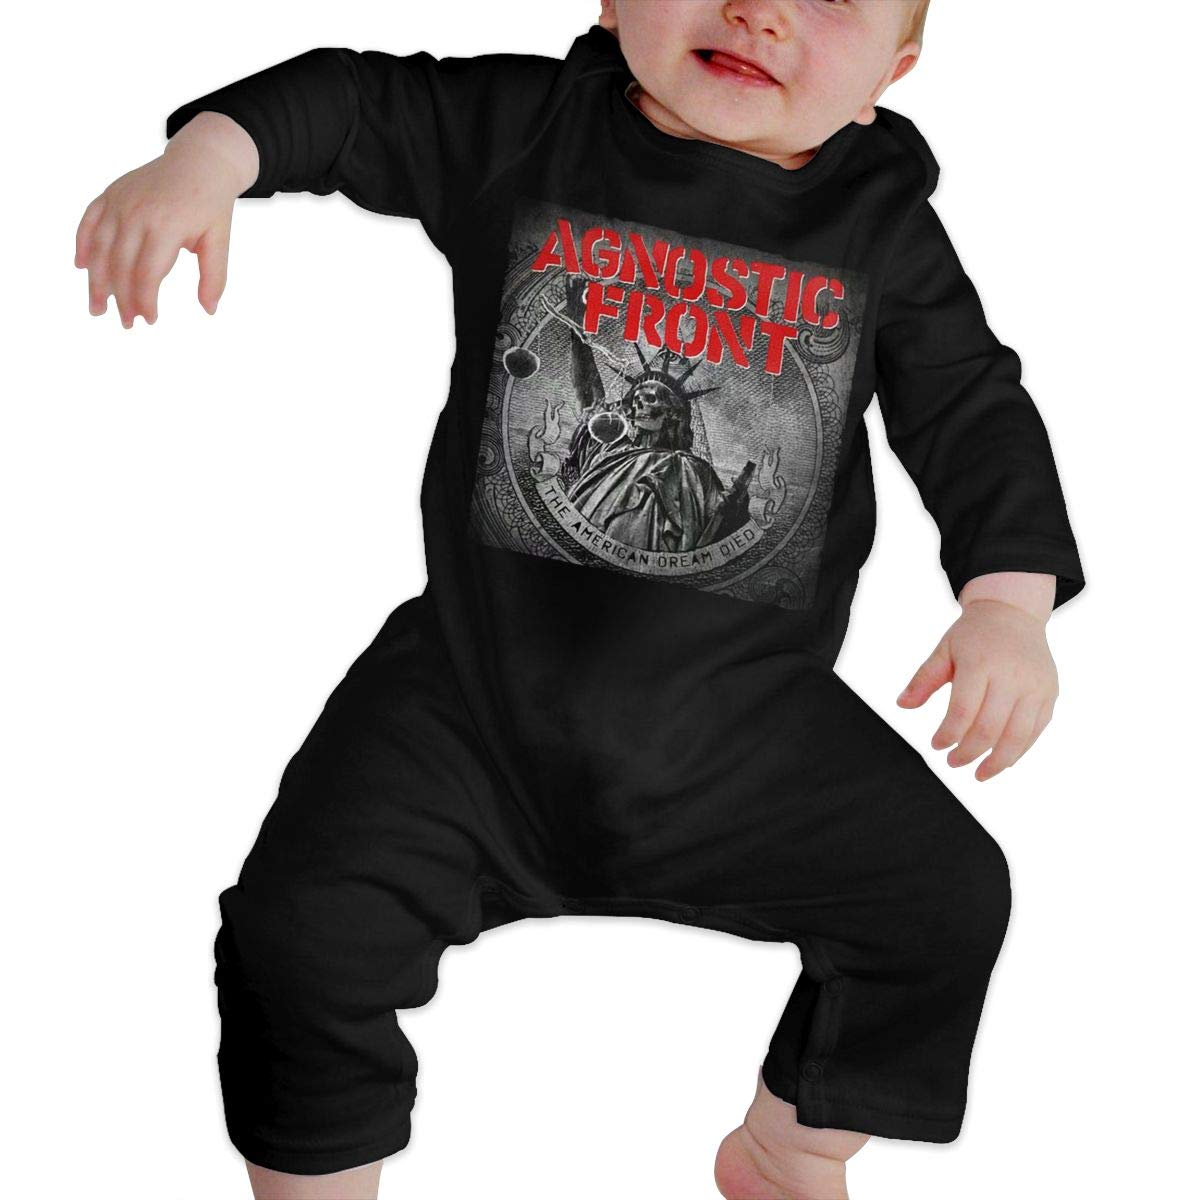 Kids Baby Long Sleeve Romper Agnostic-Front Unisex Cotton Cute Jumpsuit Baby Crawler Clothes